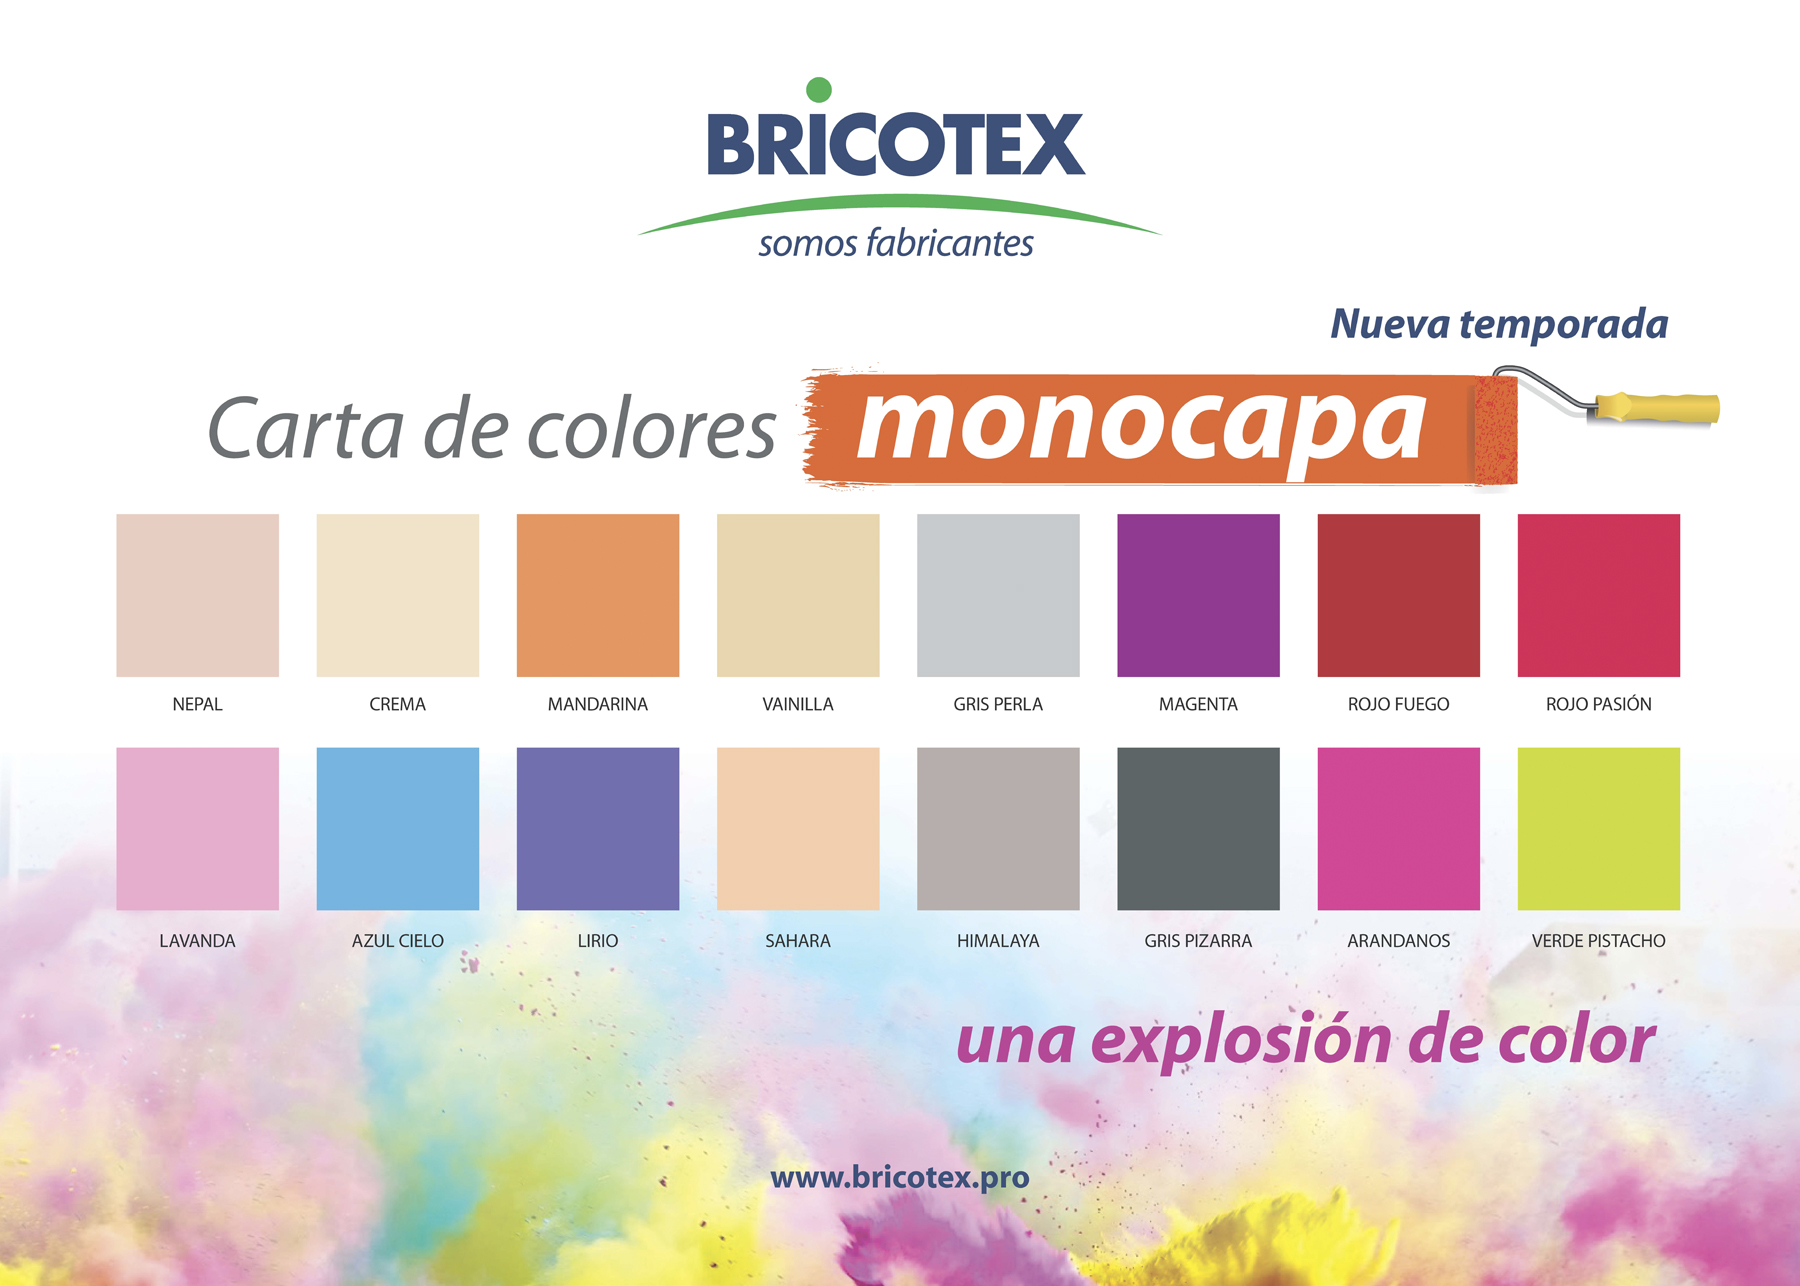 Pintura pl stica paredes y techos una capa 2 5 lt bricotex - Colores de pintura de pared ...